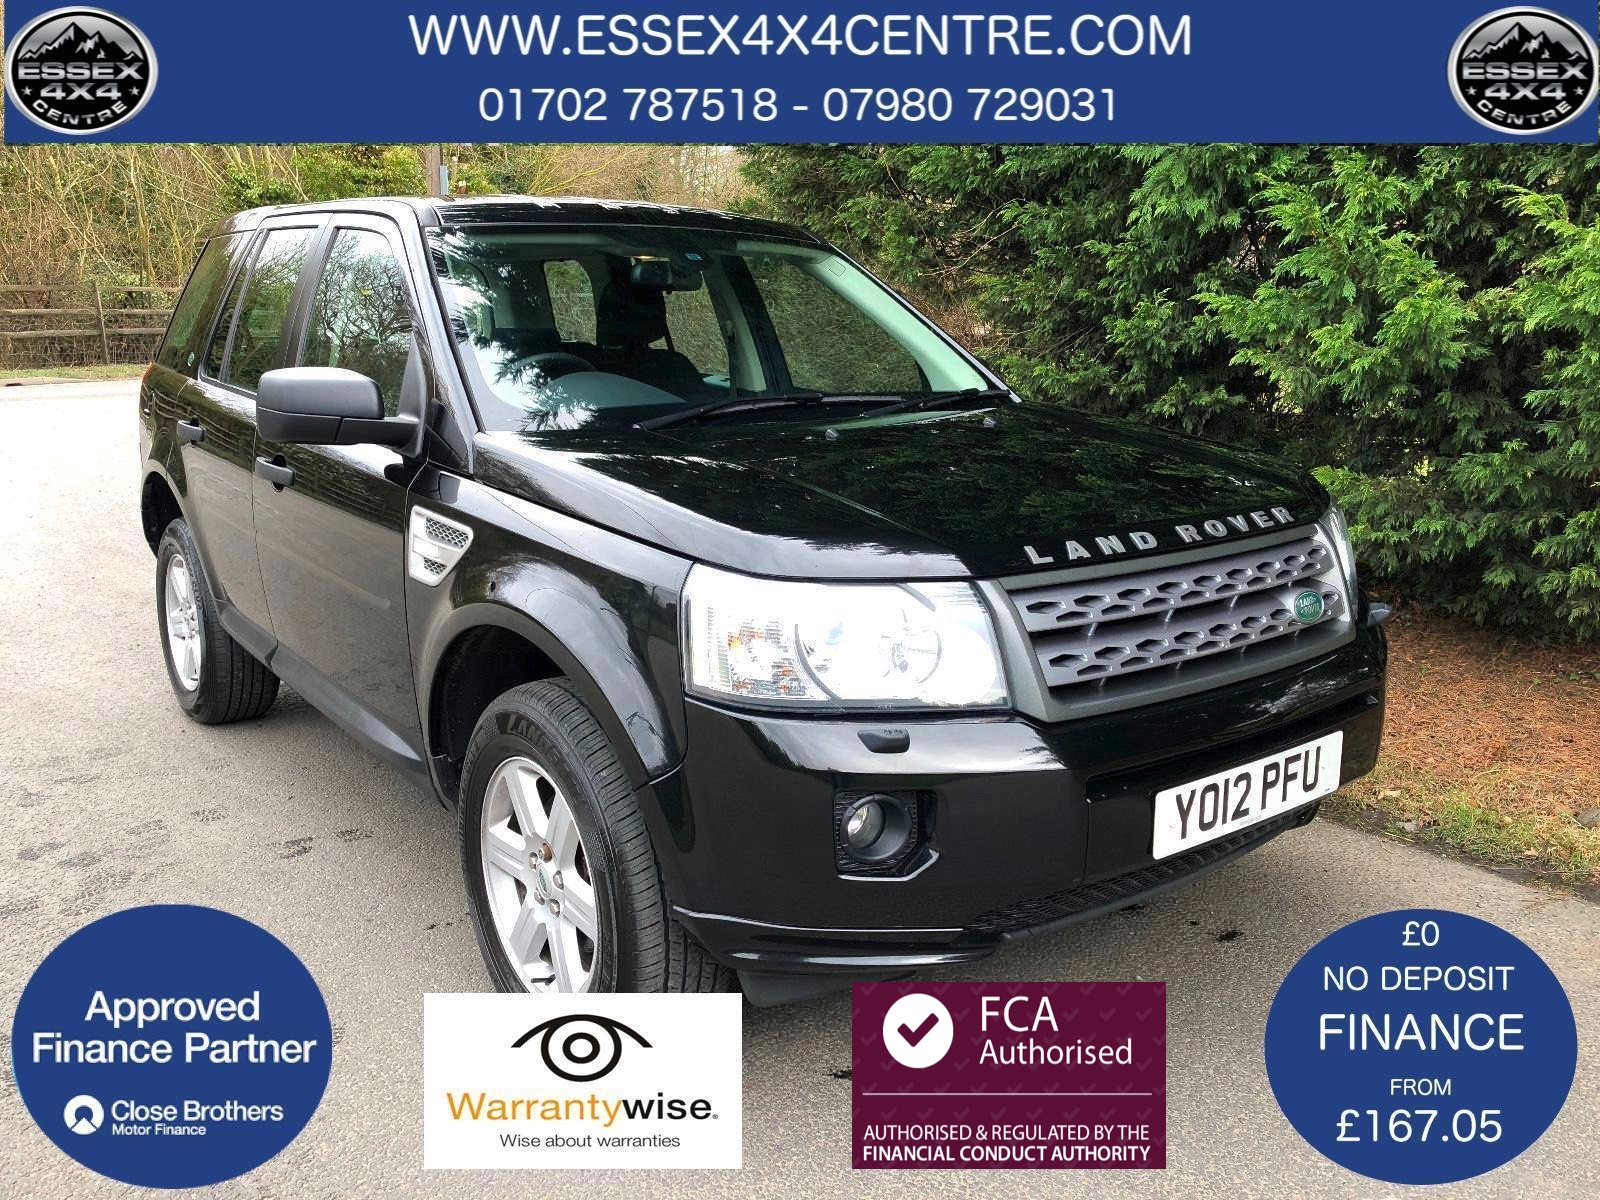 Land Rover Freelander 2 Gs 22td4 Manual 4x4 Turbo Diesel 0 Only Gbp Saab 3 Engine Diagram 2012 12